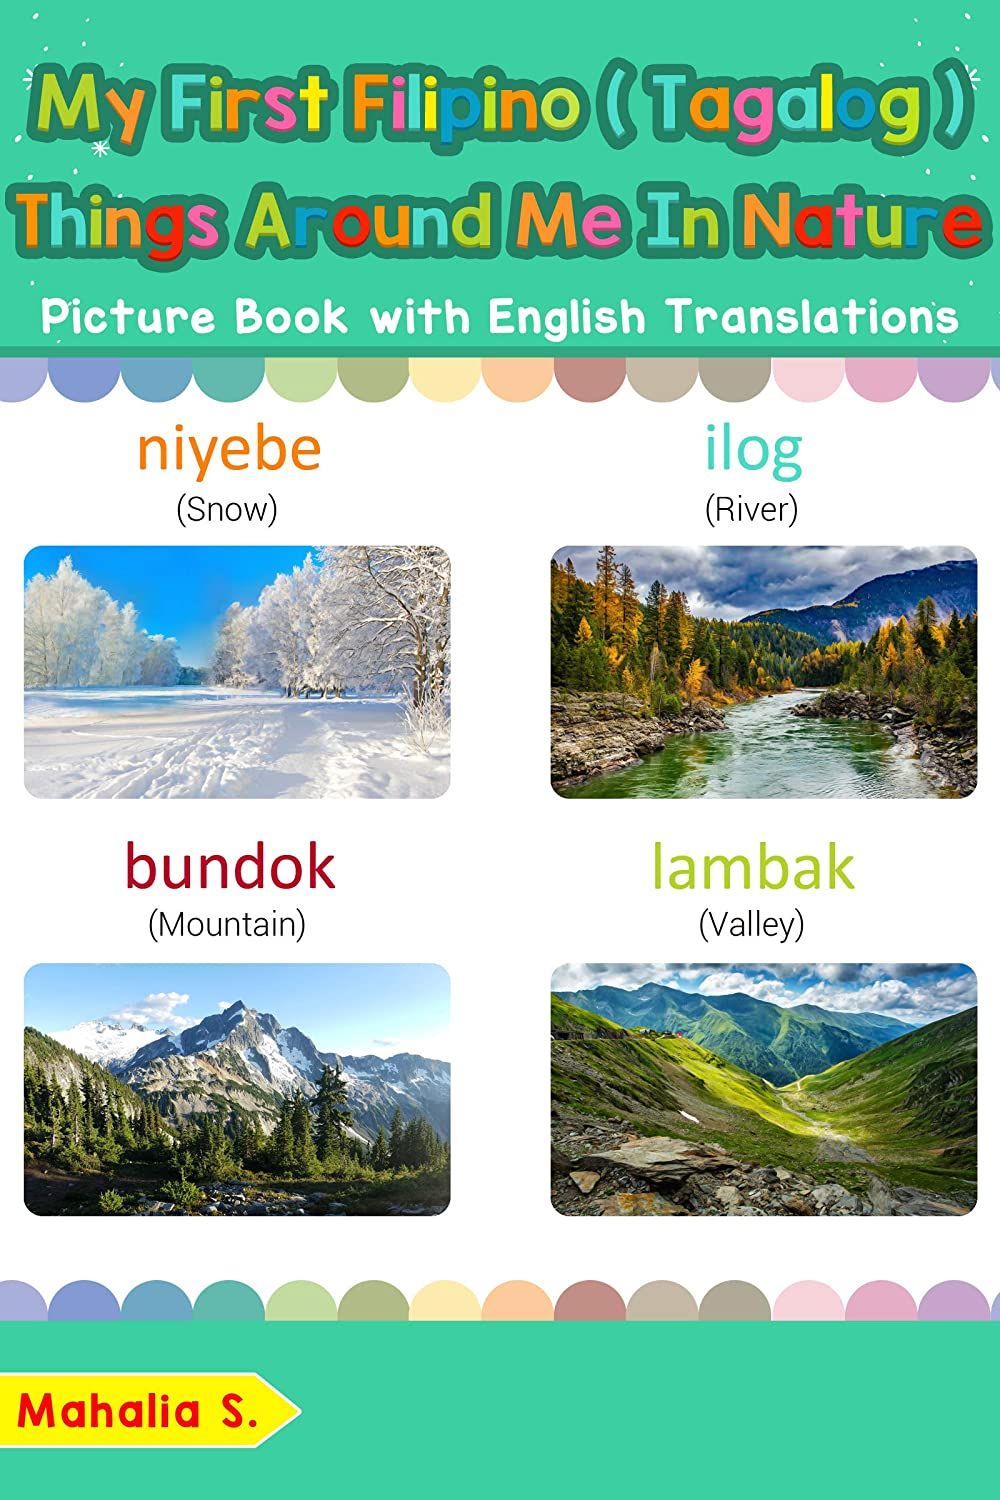 My First Filipino Tagalog Things Around Me In Nature Picture Book With English Translations Bilingual Early Learning Easy Teaching Filipino Tagalog Filipino Tagalog Words For Children 17 Ebook S Mahalia